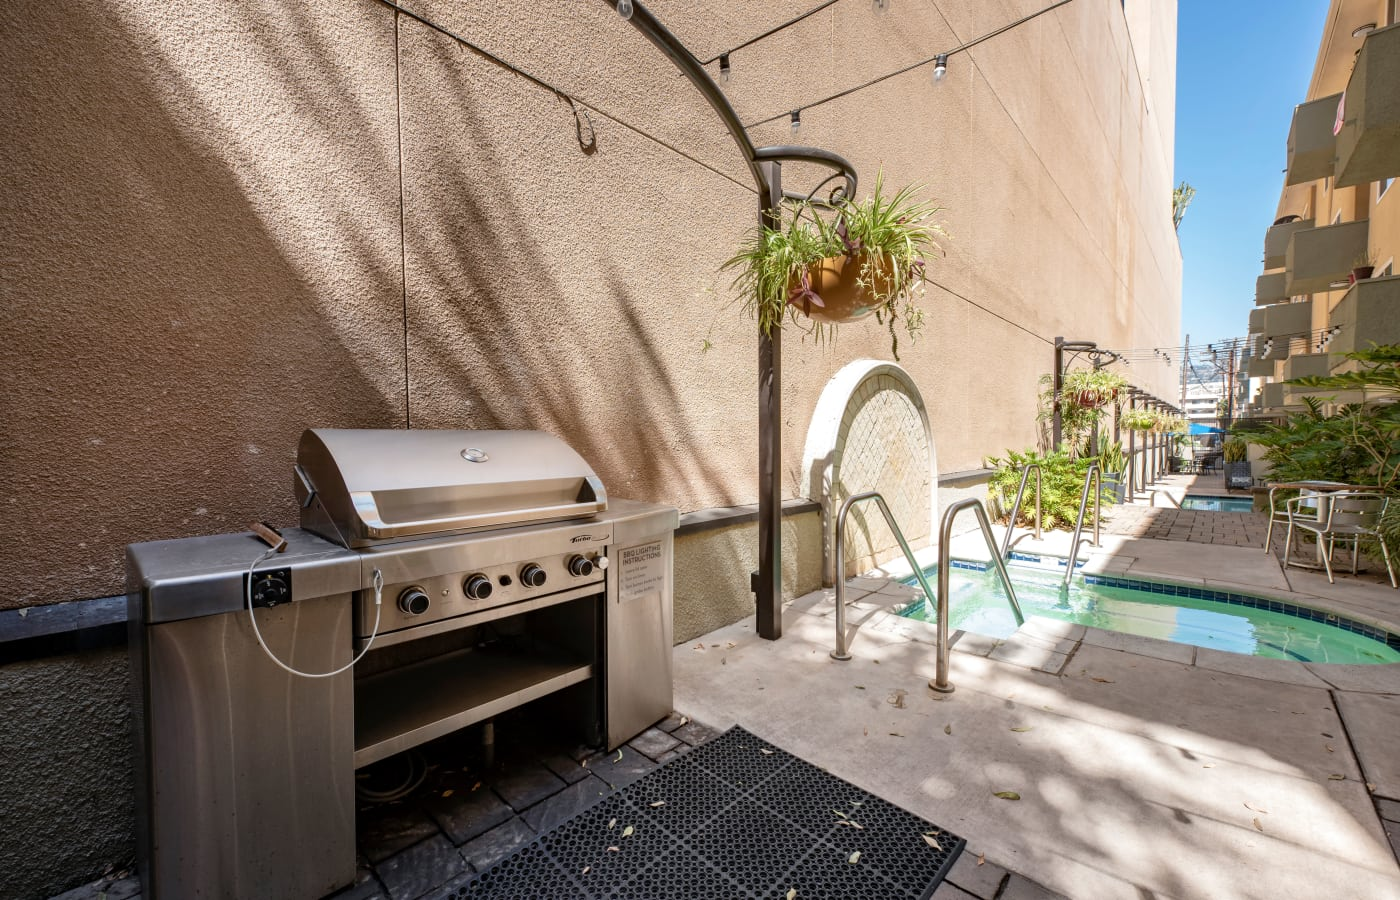 Barbecue area with gas grill at IMT Beverly Arnaz in Los Angeles, California